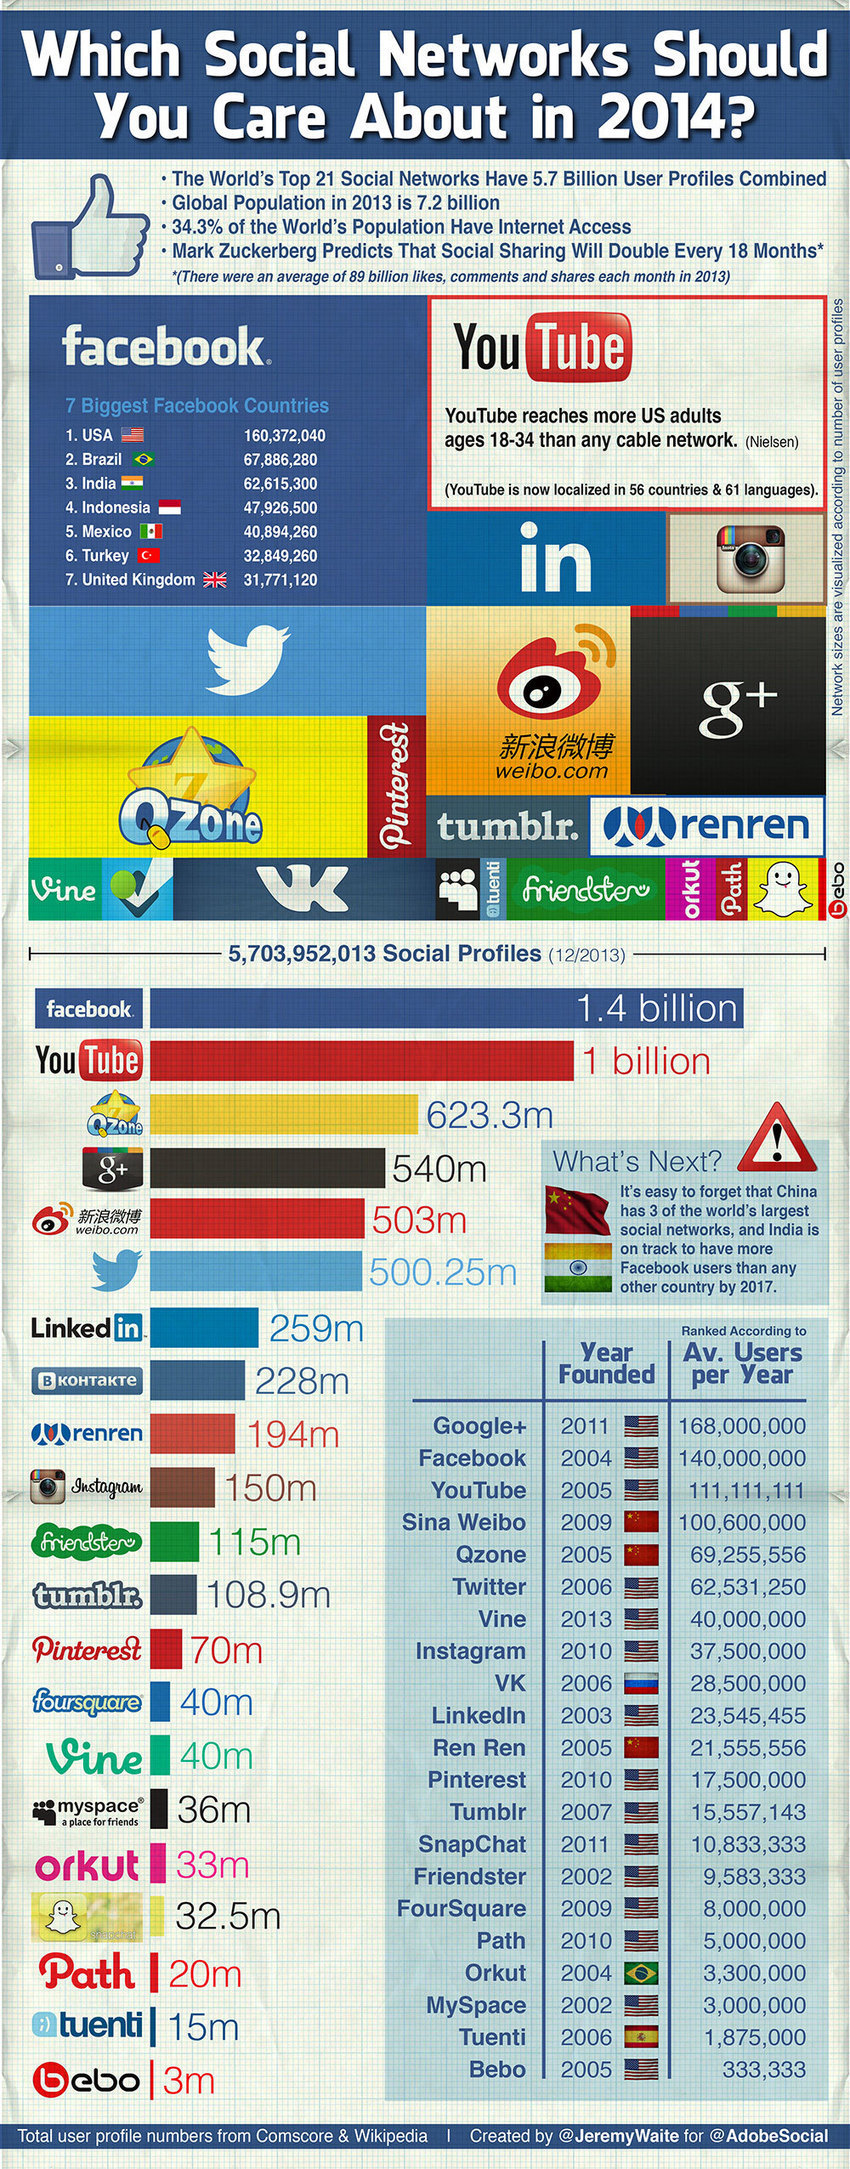 What Social Networks Should You Use in 2014? [INFOGRAPHIC]